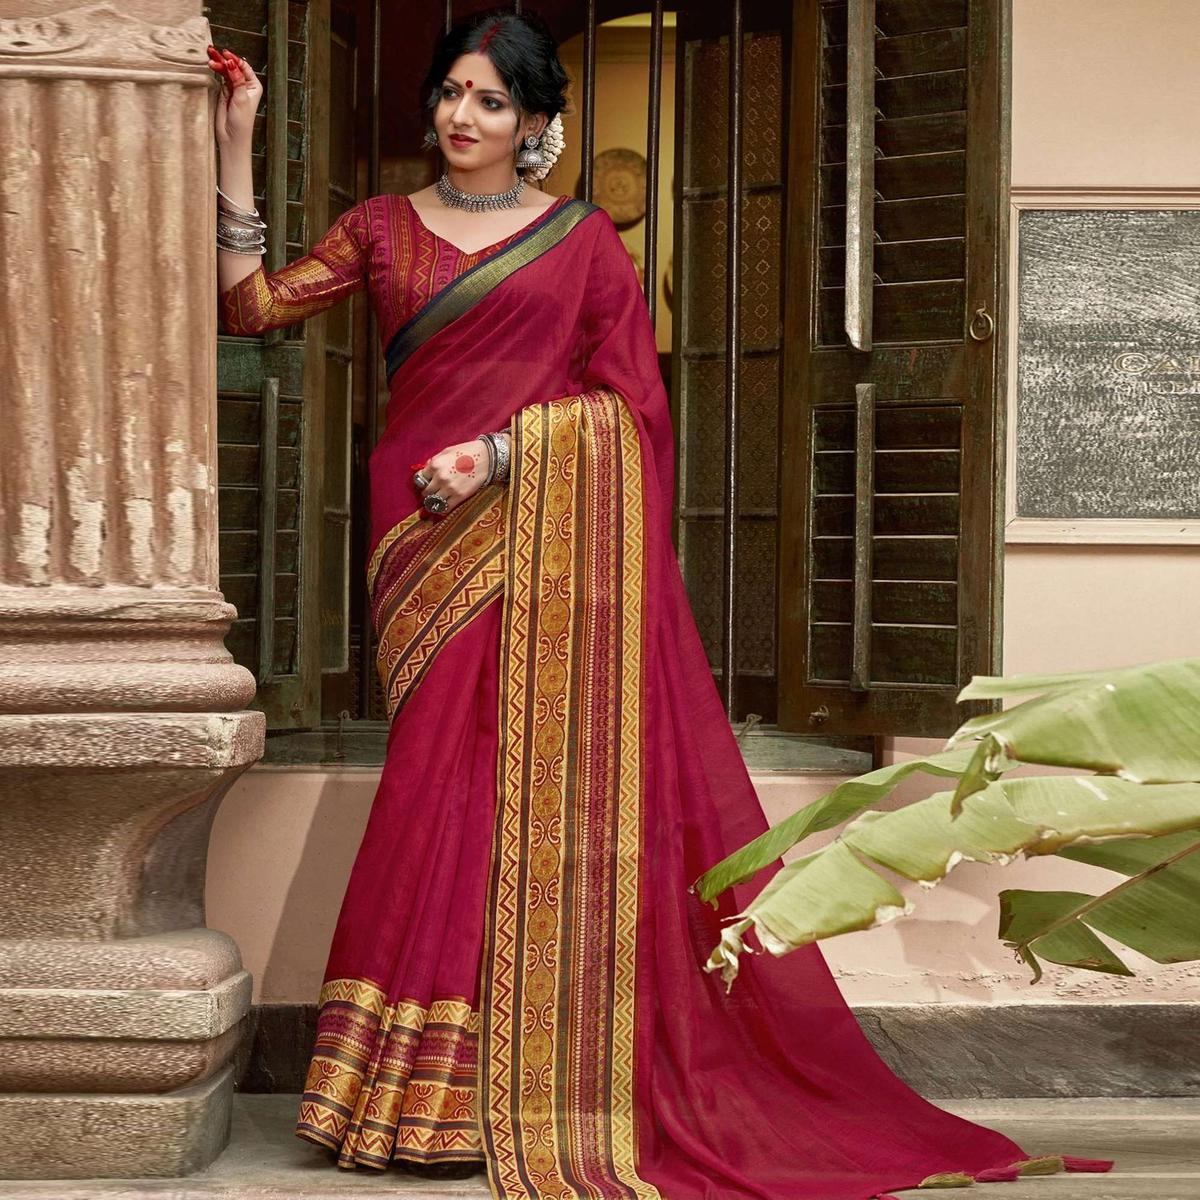 Triveni Magenta-Pink Colored Cotton Silk Solid Saree With Blouse Piece